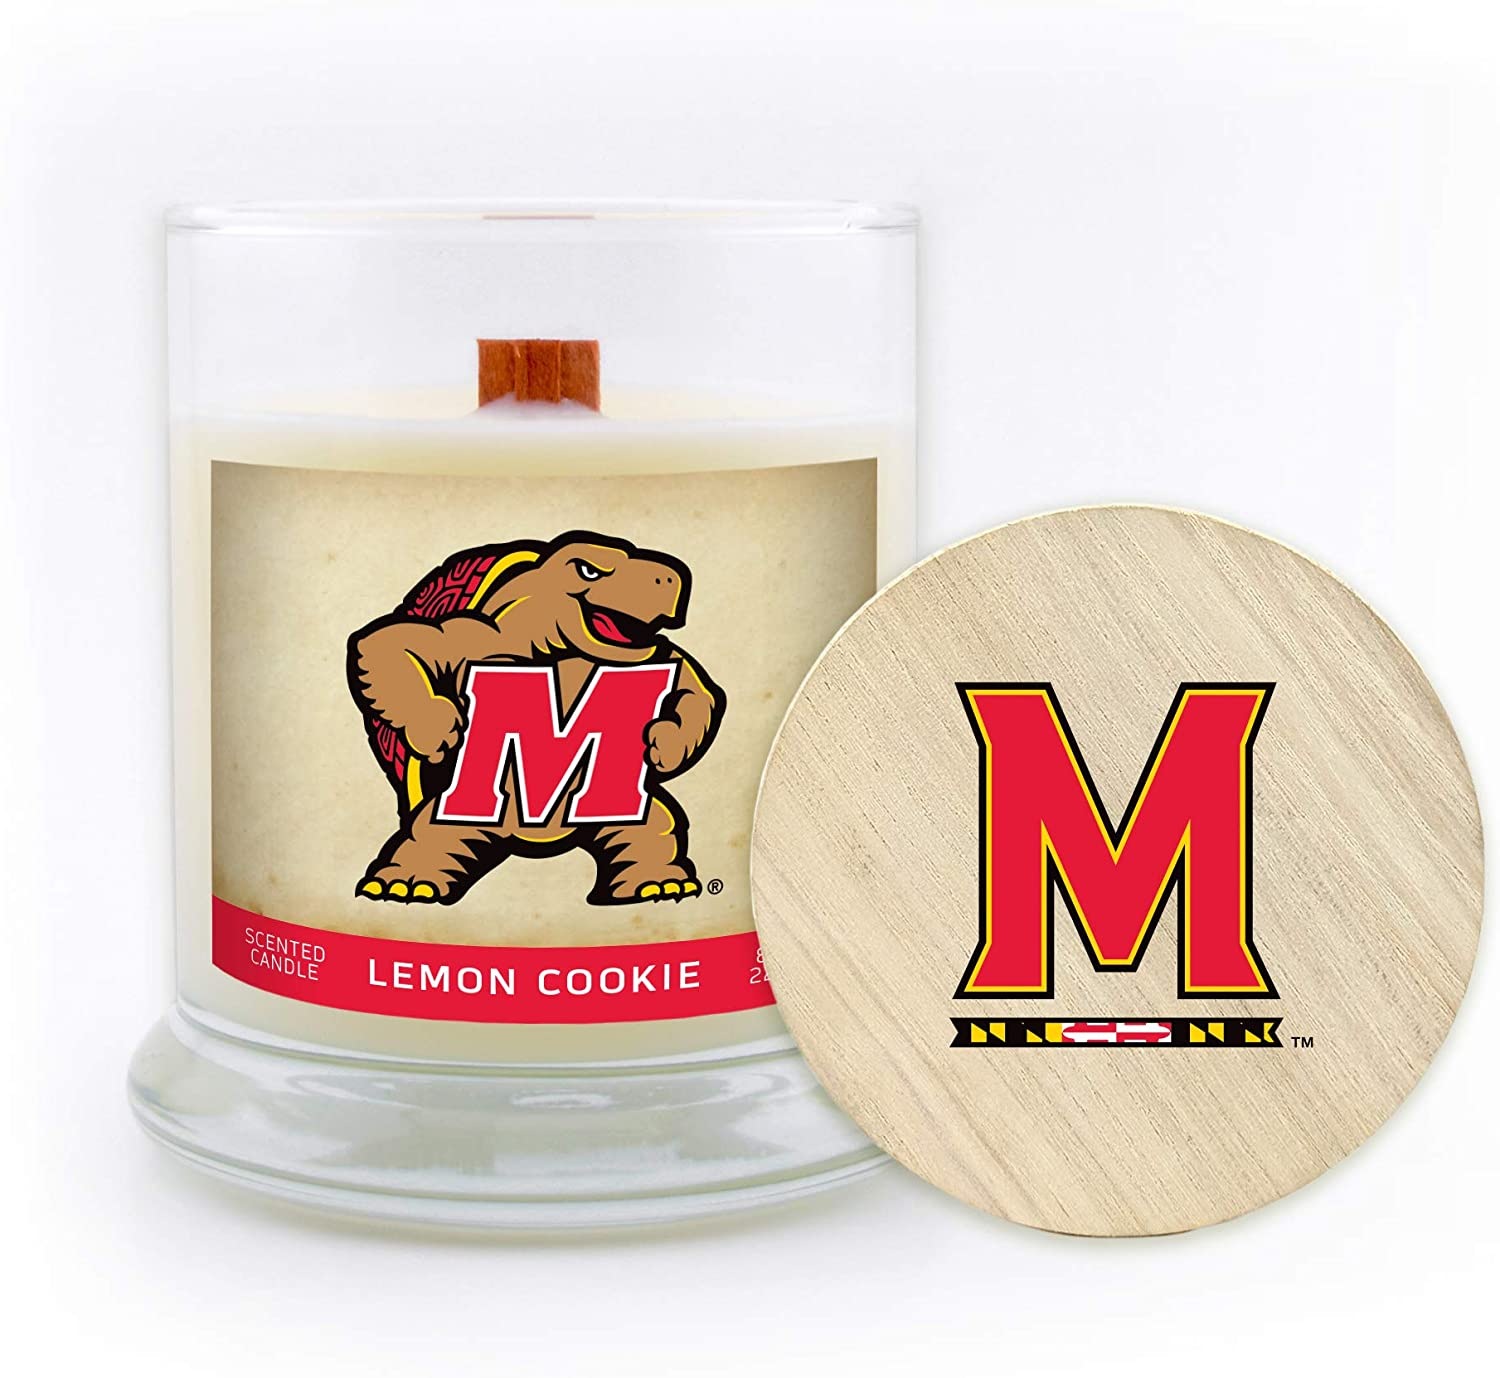 8 Oz MD-UM-LSCLC Lemon Cookie Worthy Promo Maryland Terrapins Gifts Soy Wax Scented Candle w//Wooden Lid